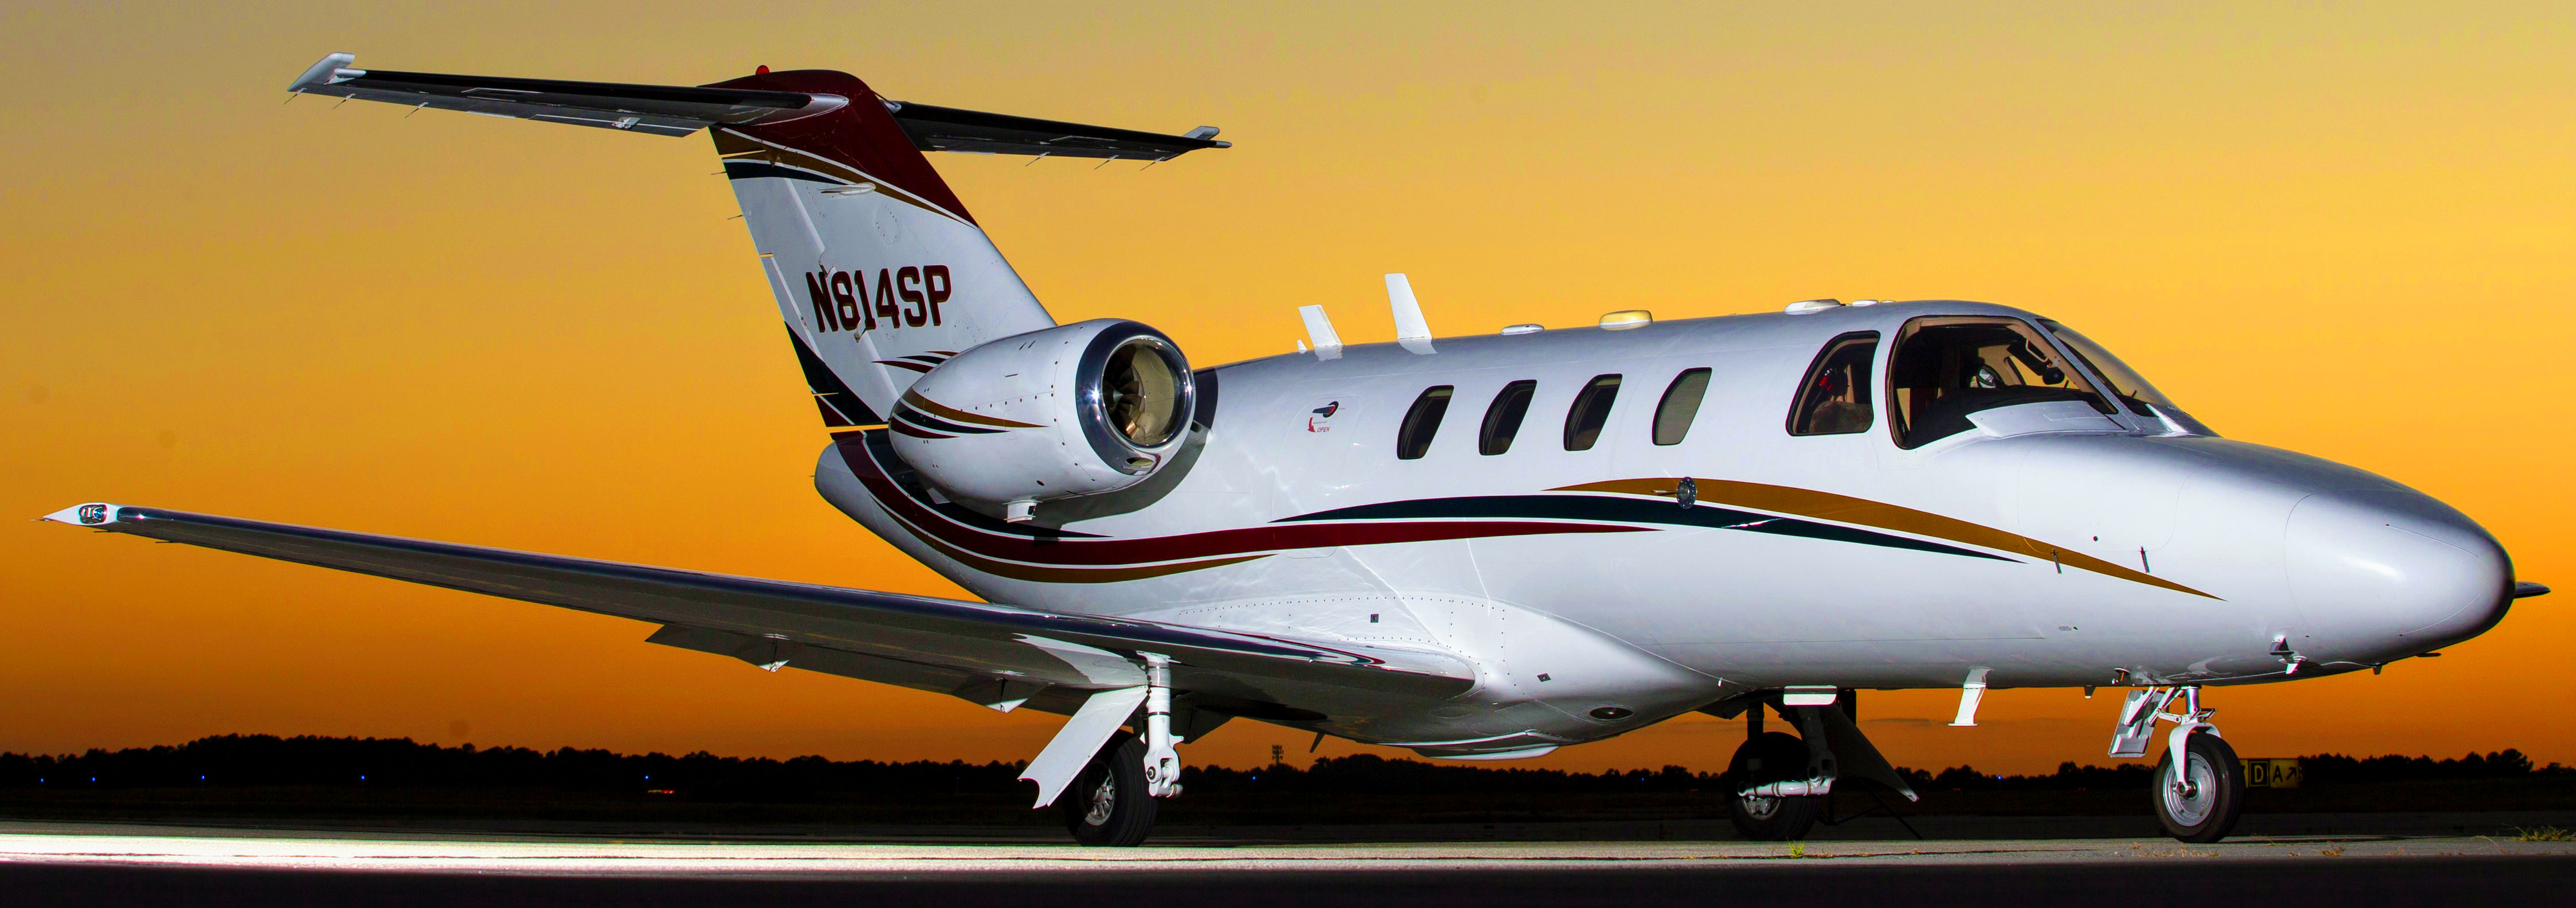 2003 Citation CJ1